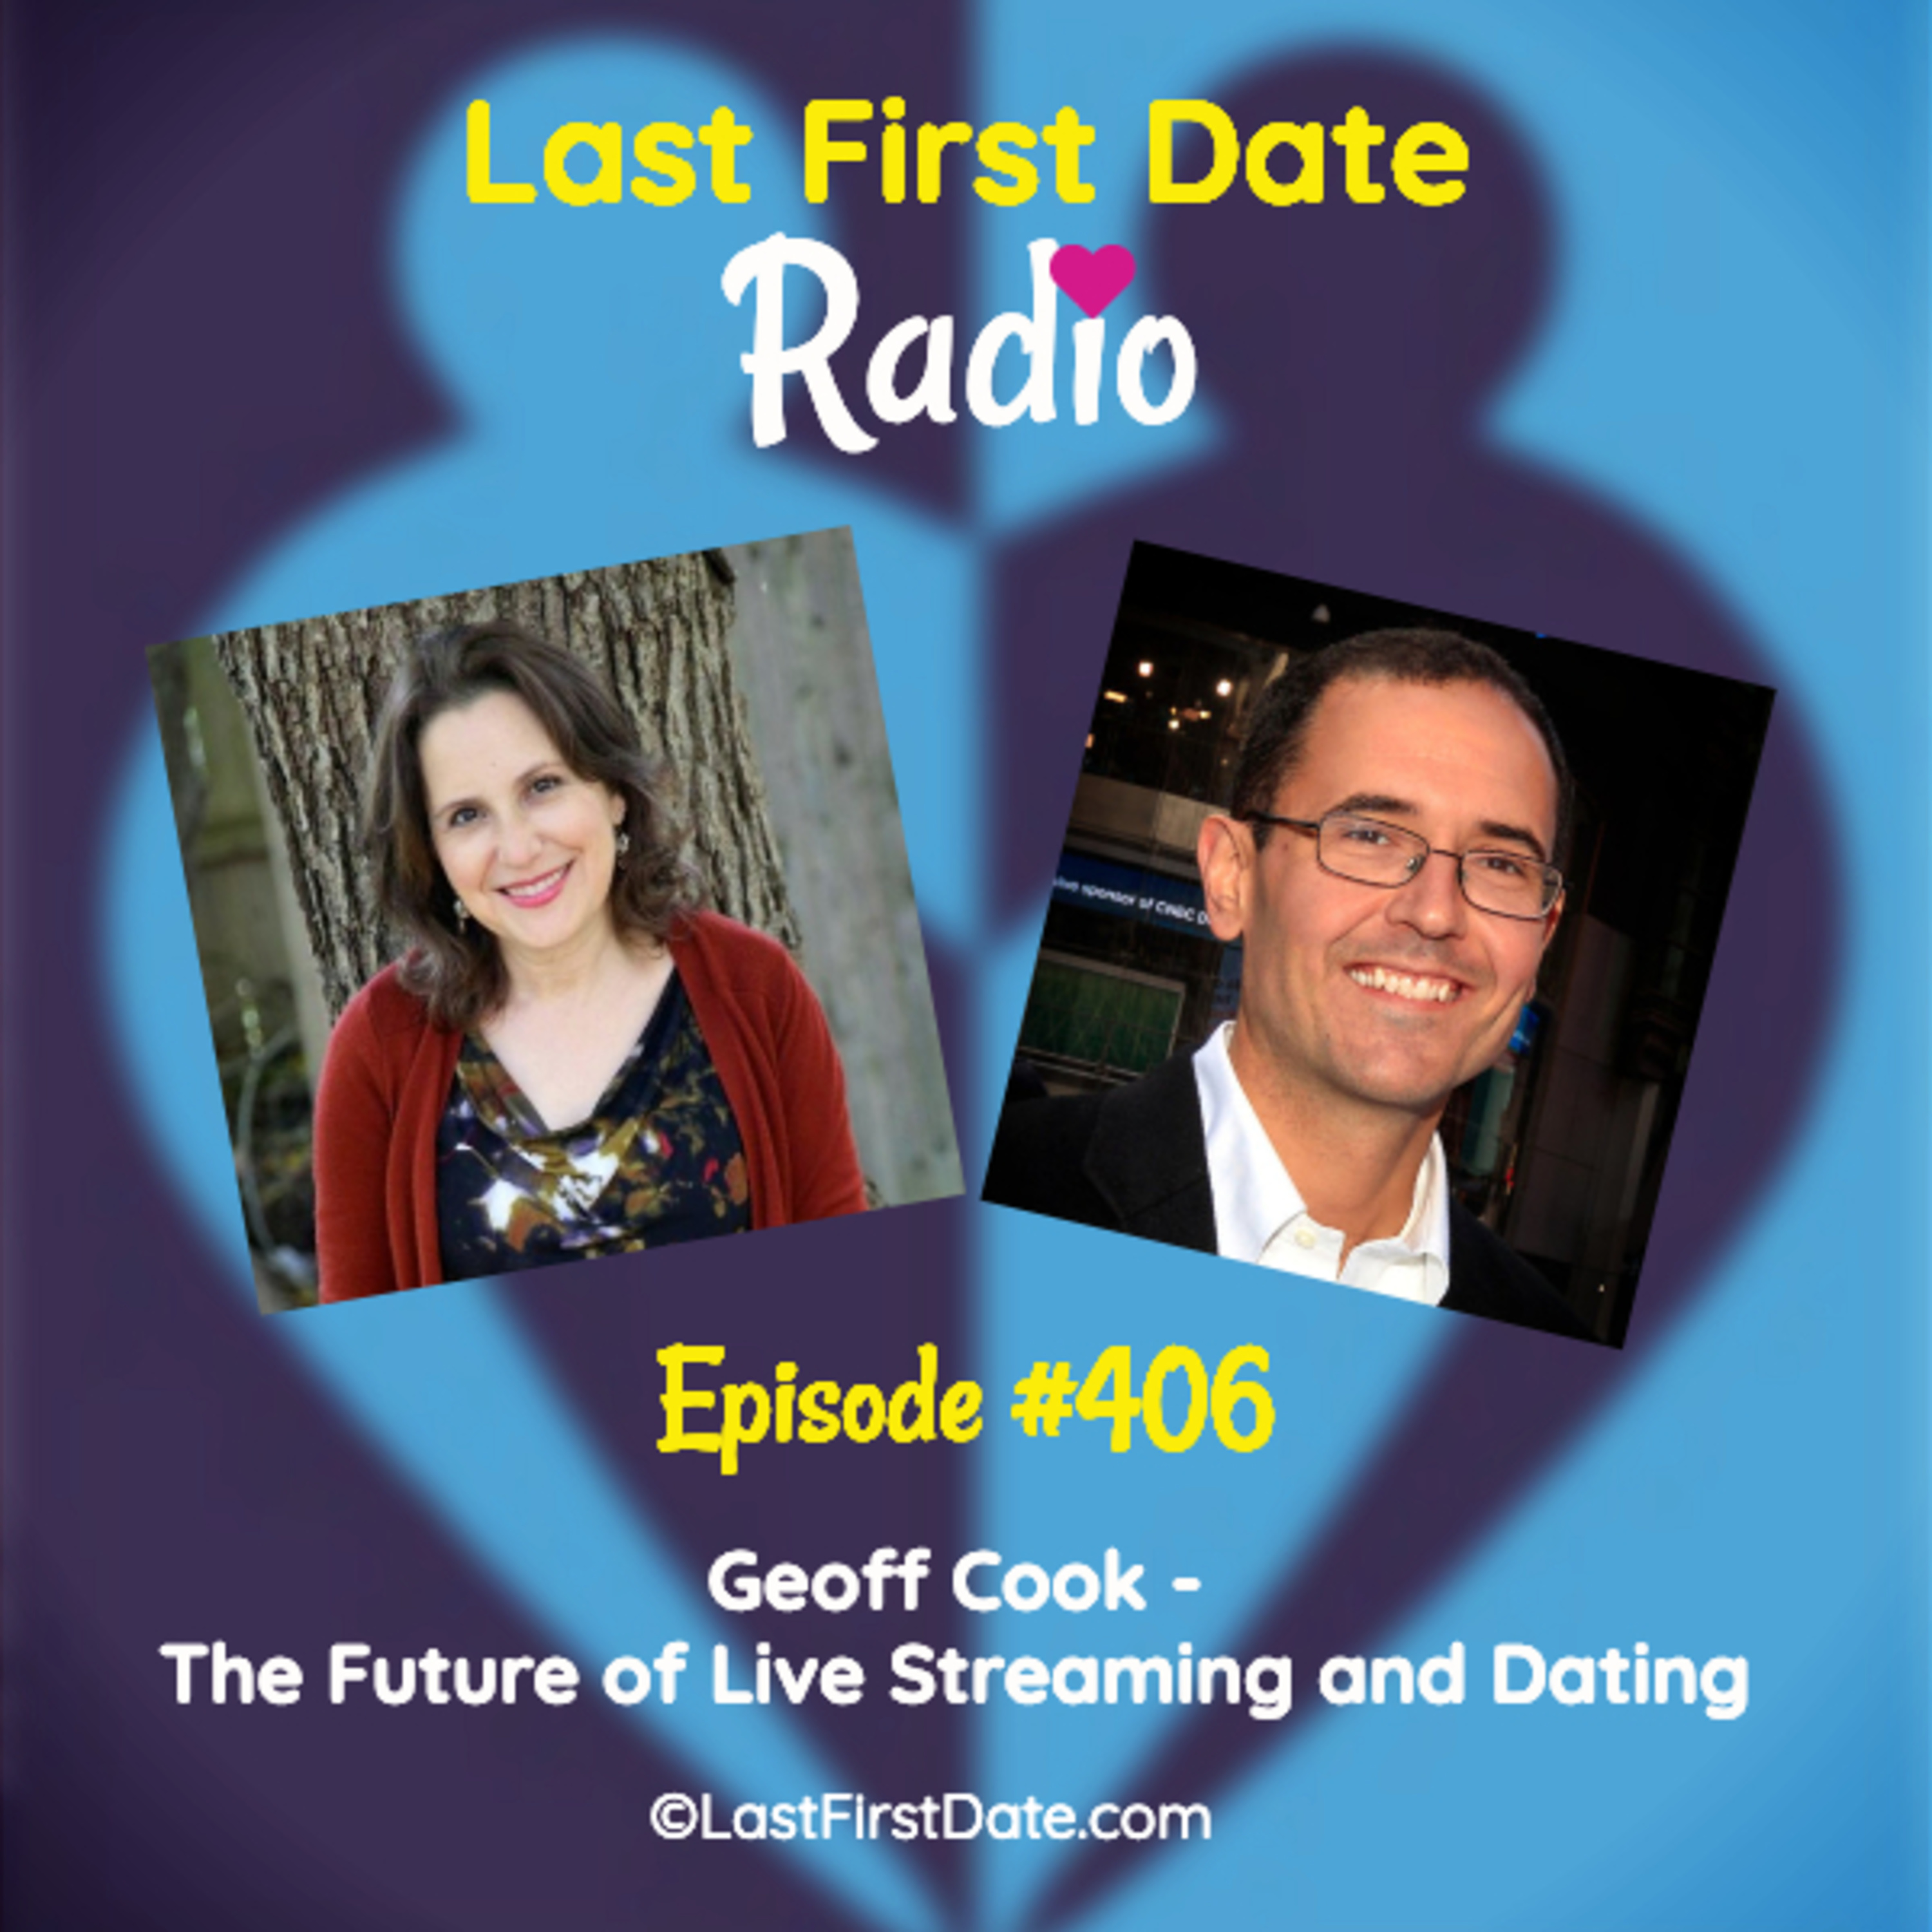 Last First Date Radio - EP 406: Geoff Cook - The Future of Live Streaming and Dating